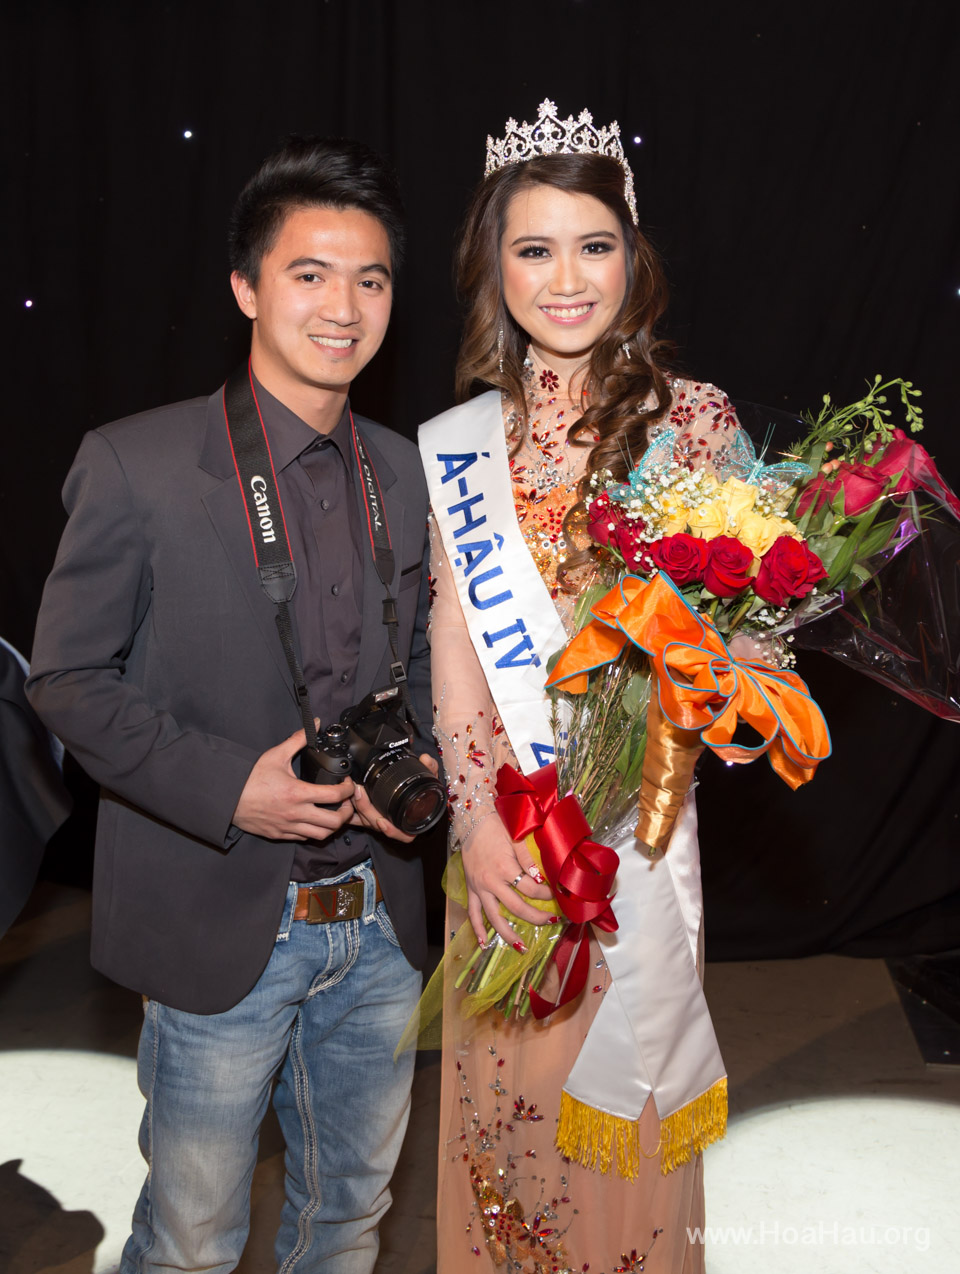 Miss Vietnam of Northern California 2014 - Hoa Hau Ao Dai Bac Cali 2014 - Behind the Scenes - Image 307